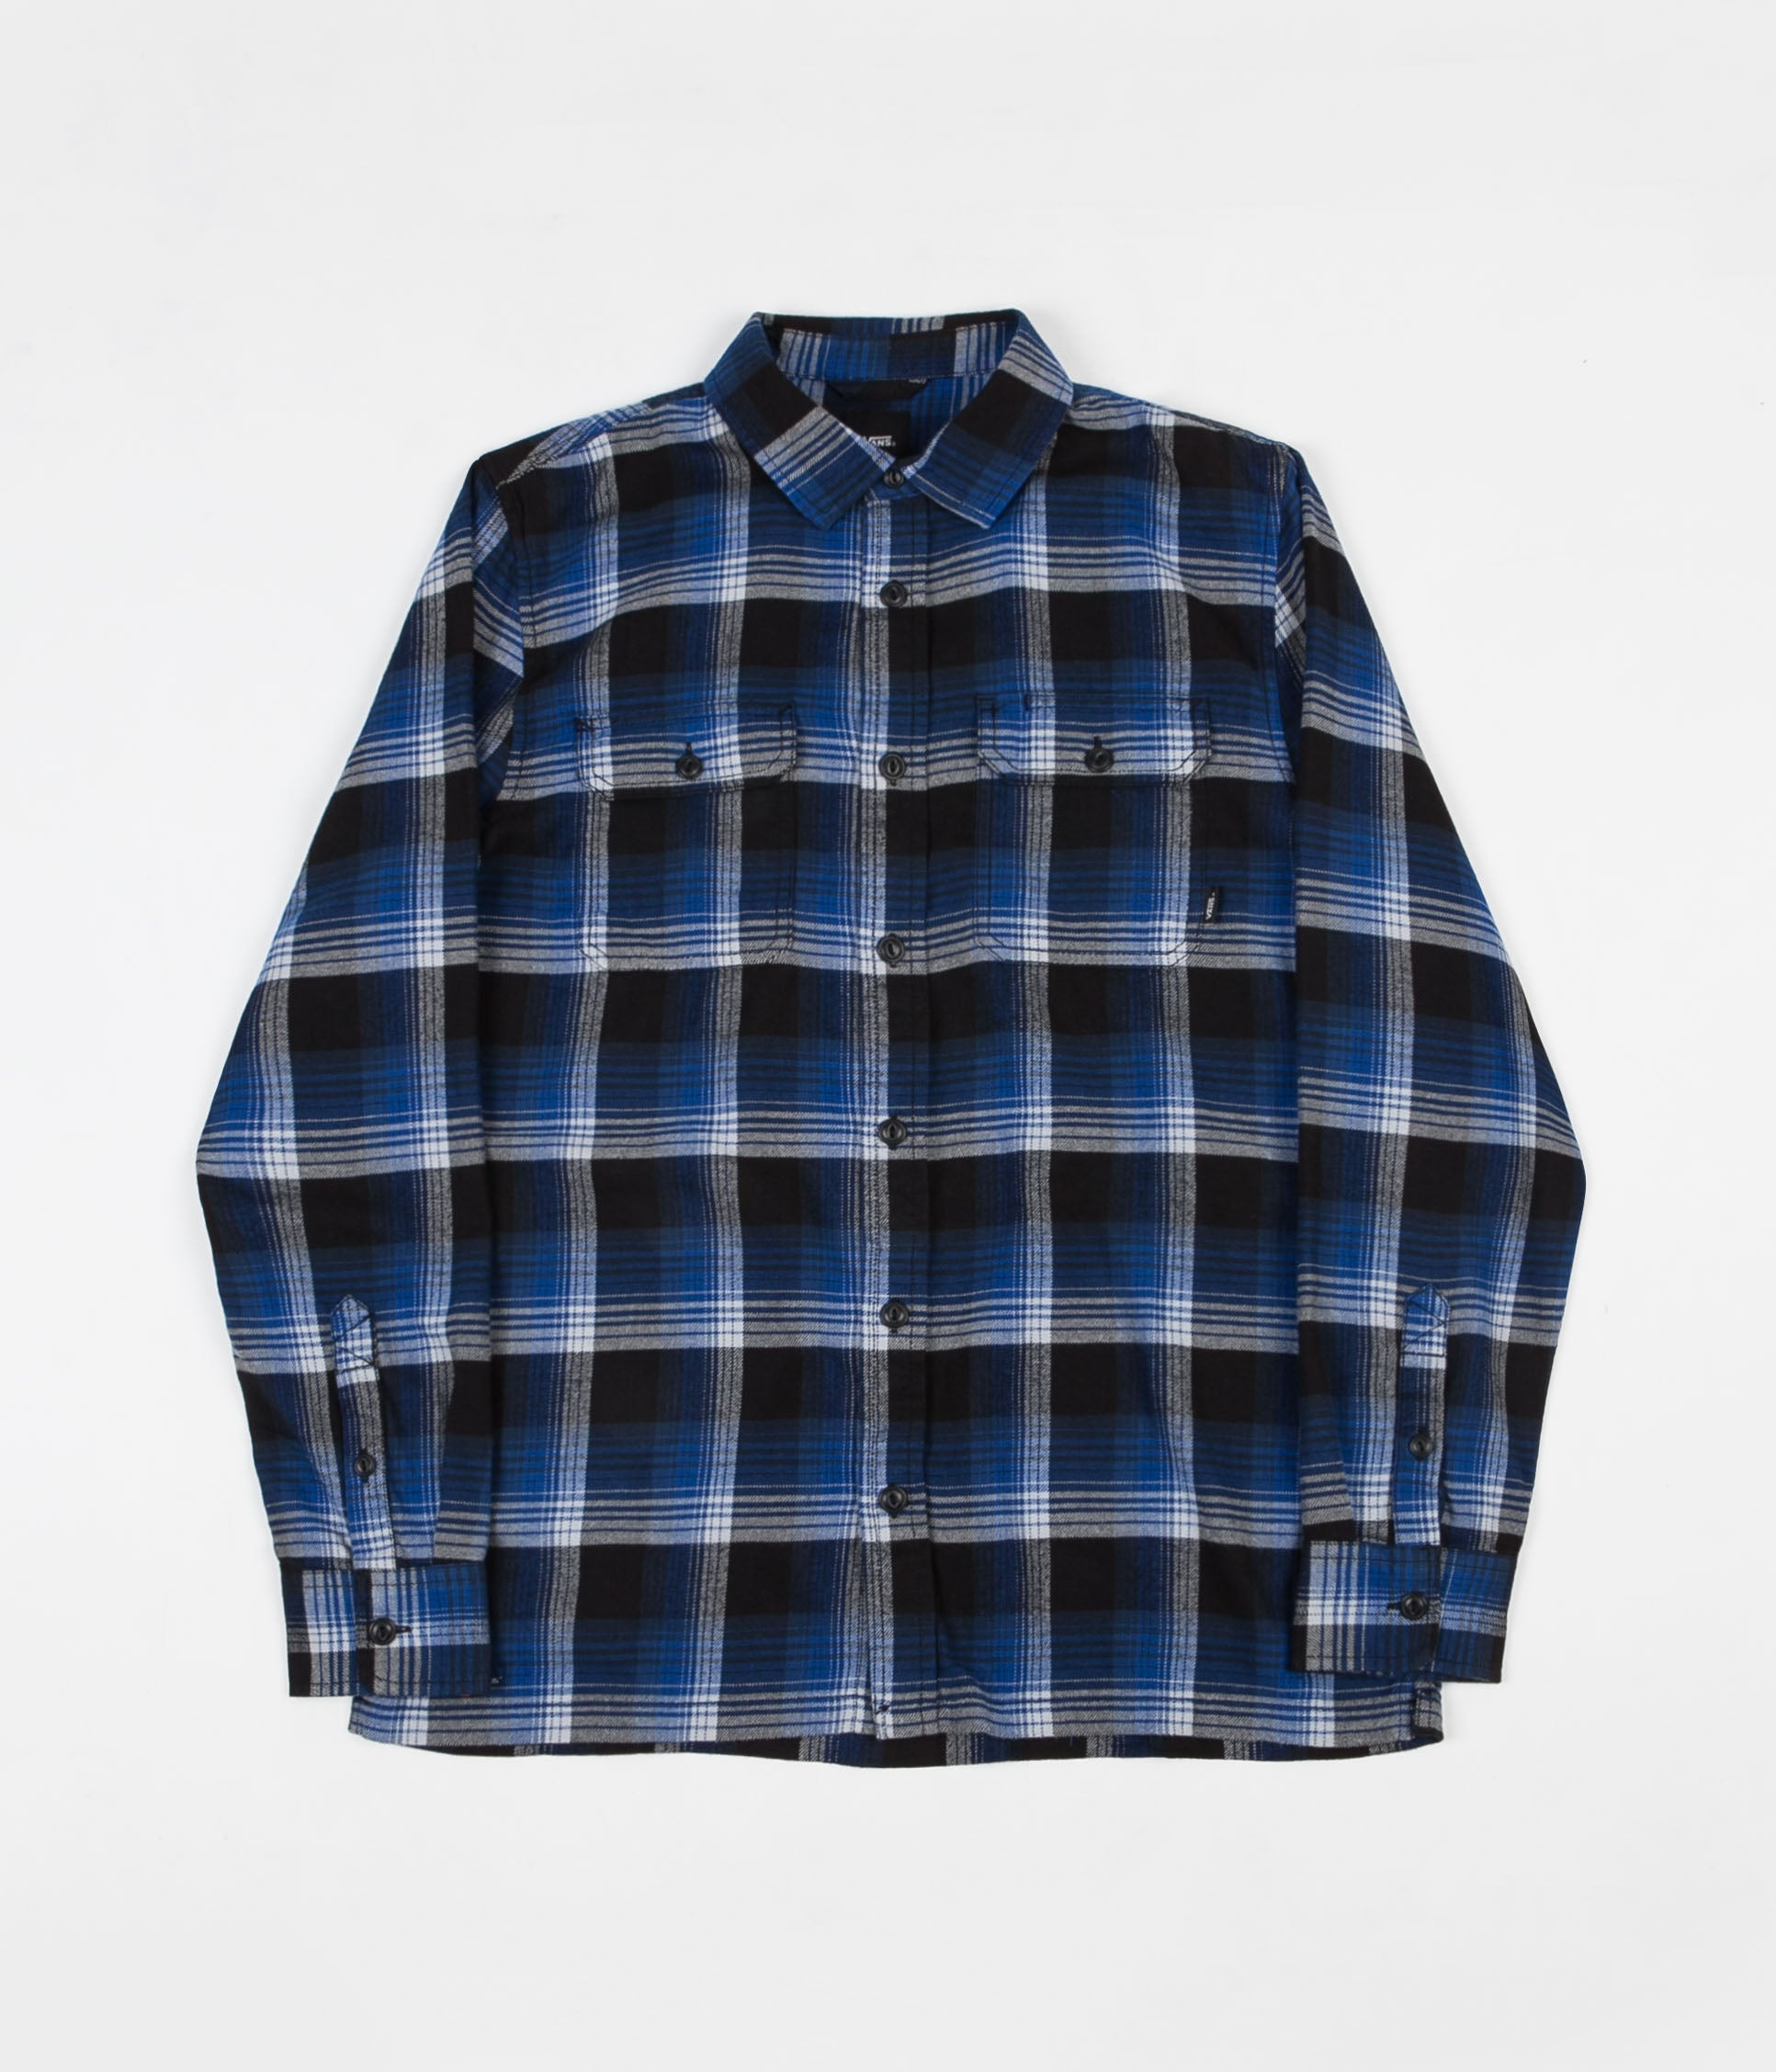 aaf39077f8 Vans x Anti Hero Wired Flannel Shirt - True Blue / Black | Flatspot